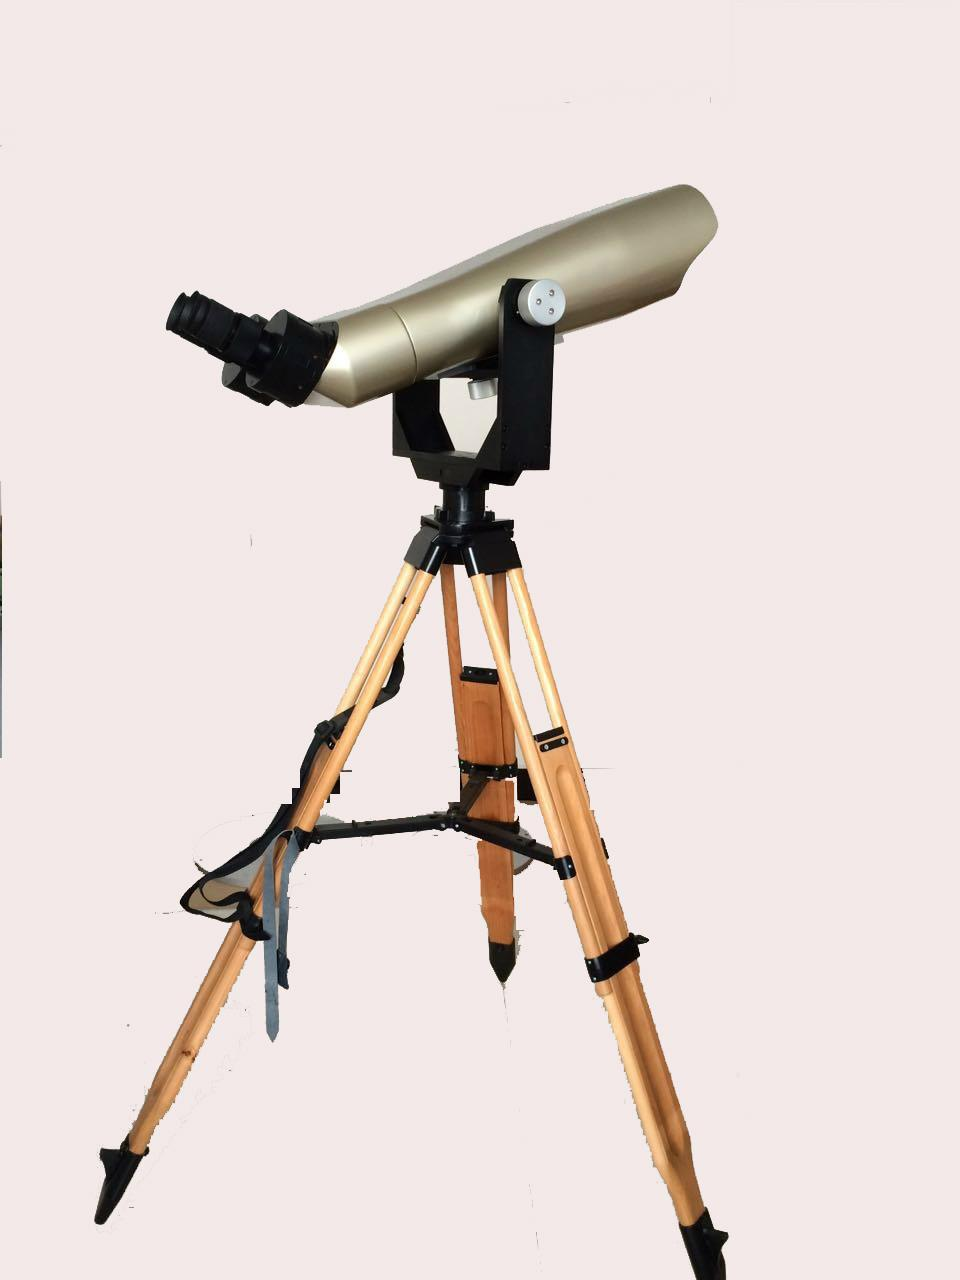 120mm high powered binoculars It's easily see farther, see clearer